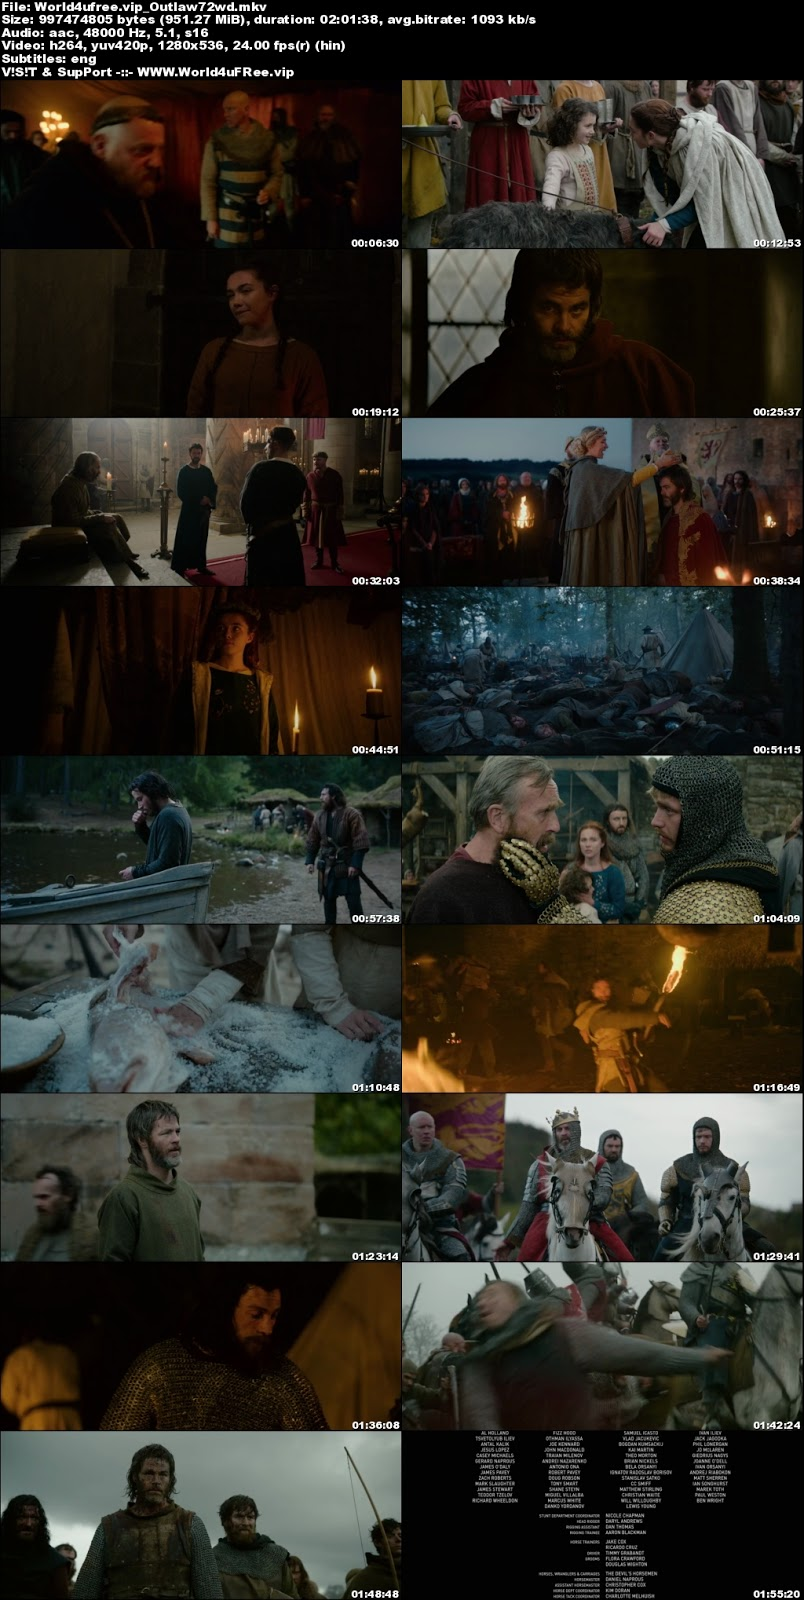 Outlaw King 2018 Eng 720p HDRip 950Mb ESub x264 world4ufree.fun hollywood movie Outlaw King 2018 english movie 720p BRRip blueray hdrip webrip Outlaw King 2018 web-dl 720p free download or watch online at world4ufree.fun